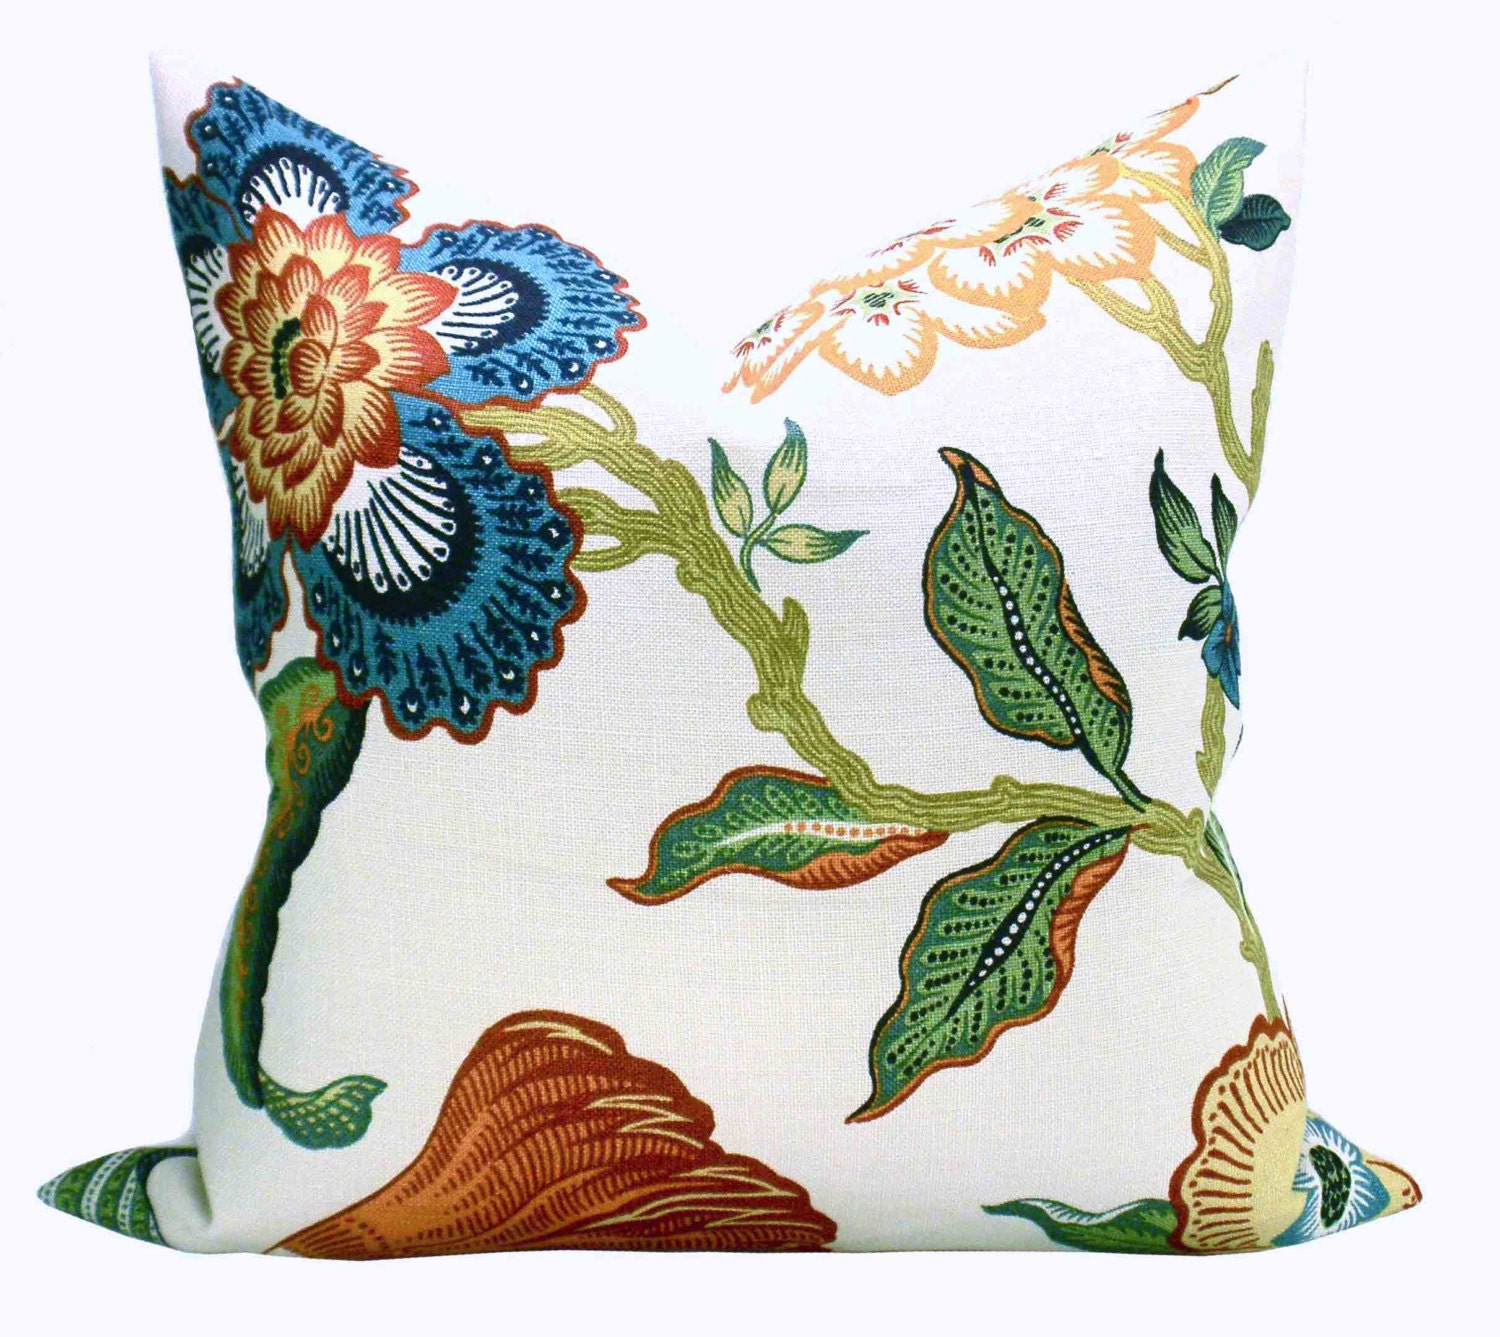 Schumacher Hothouse Flowers pillow cover in Spark peacock